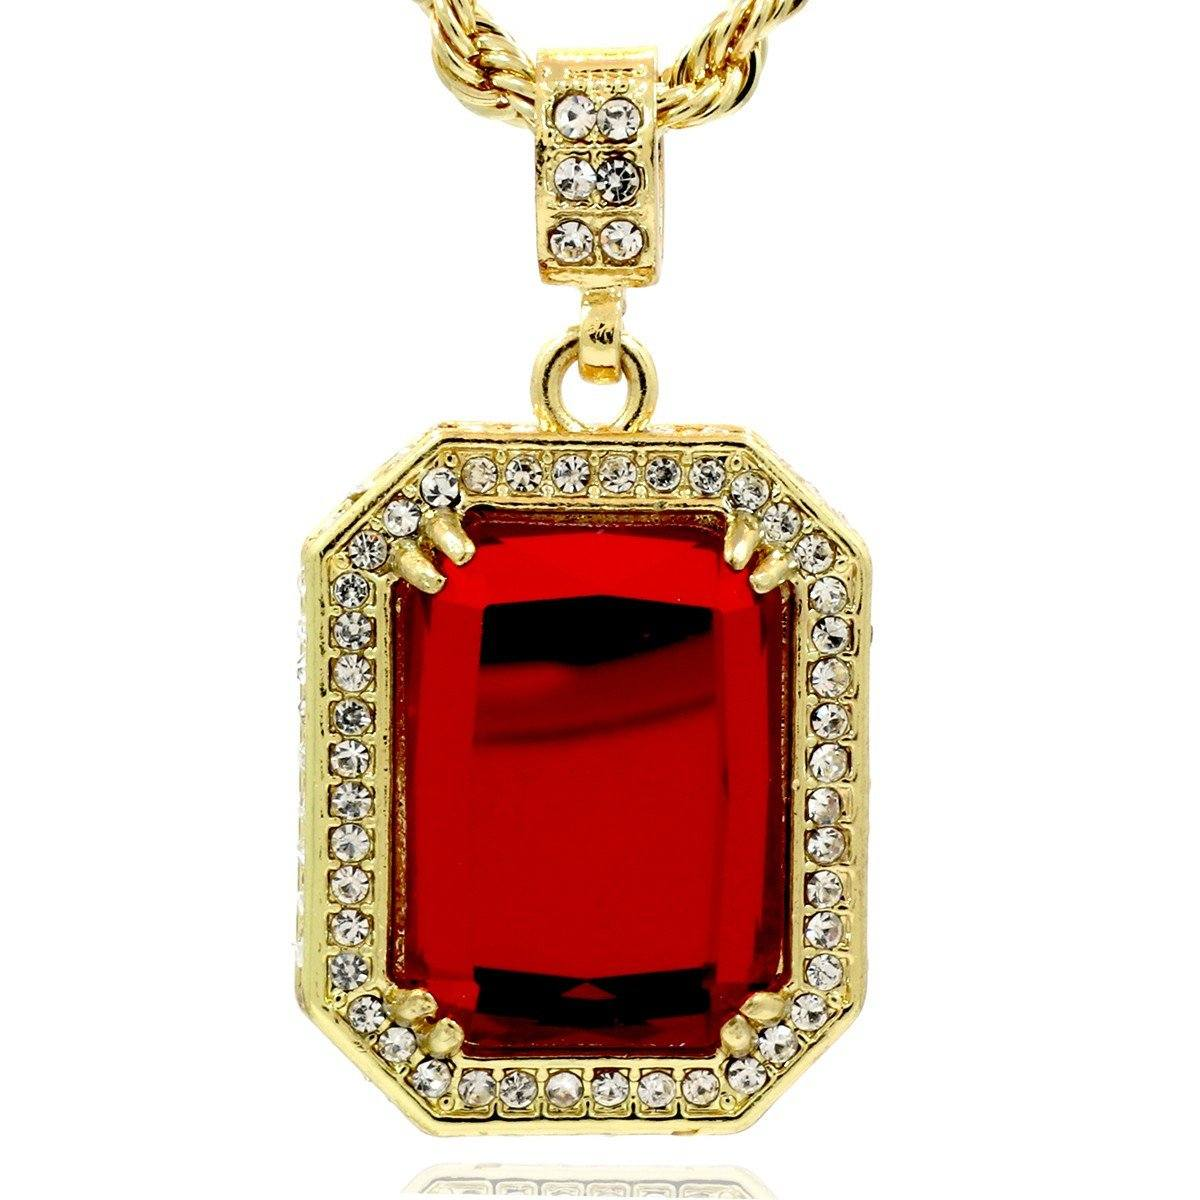 RED RUBY PENDANT WITH GOLD ROPE CHAIN